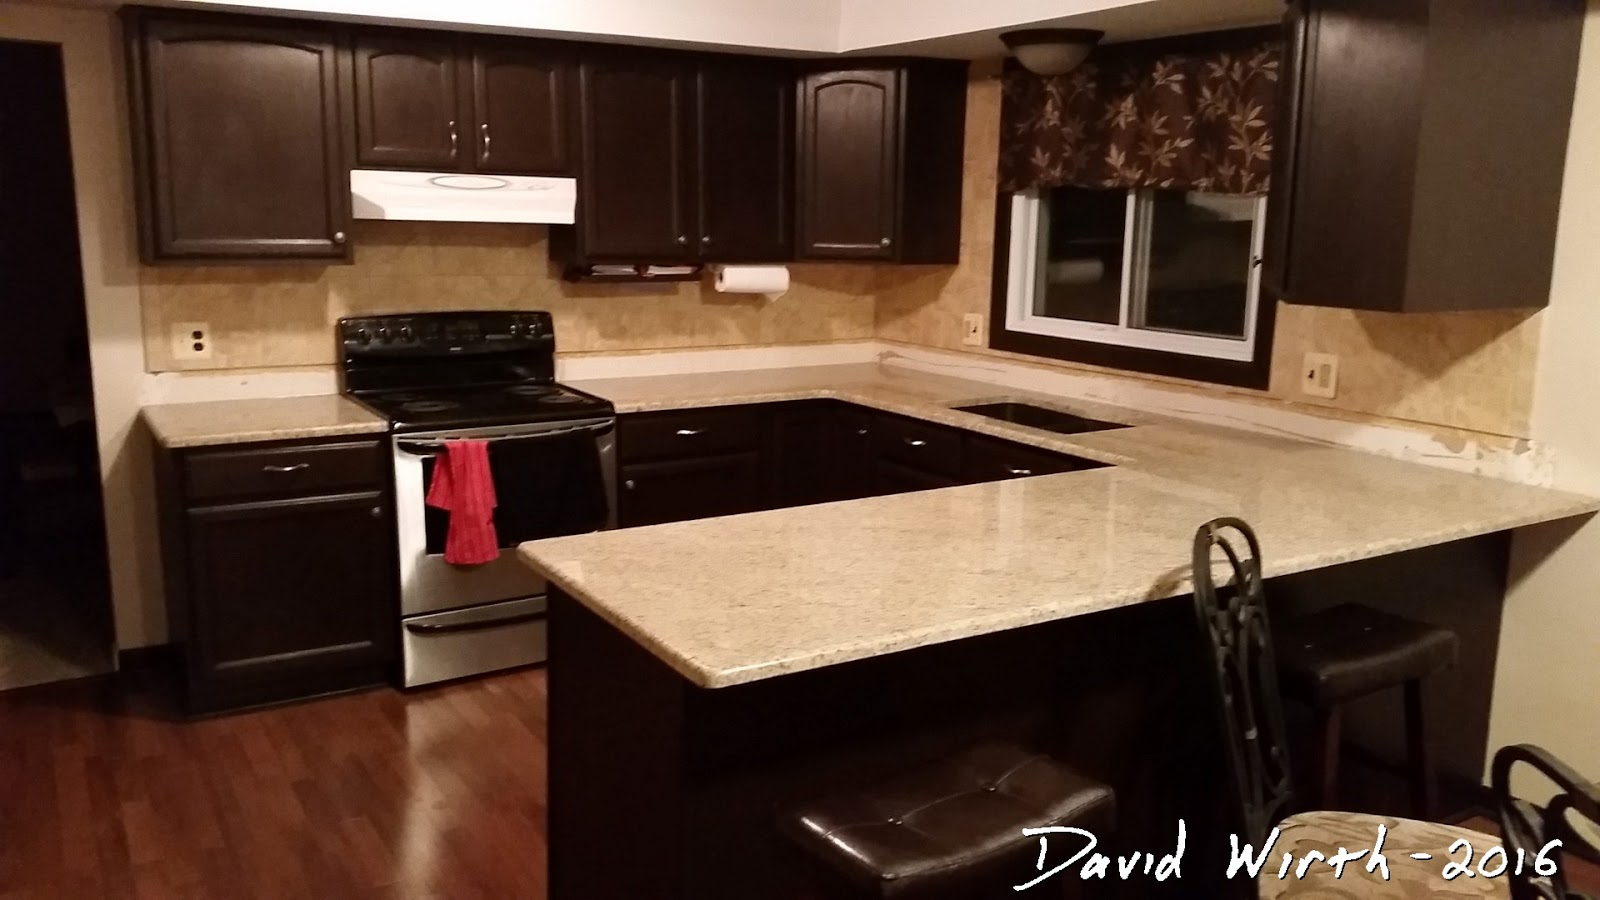 kitchen cabinets refinishing red table set - easy refinish and remodel